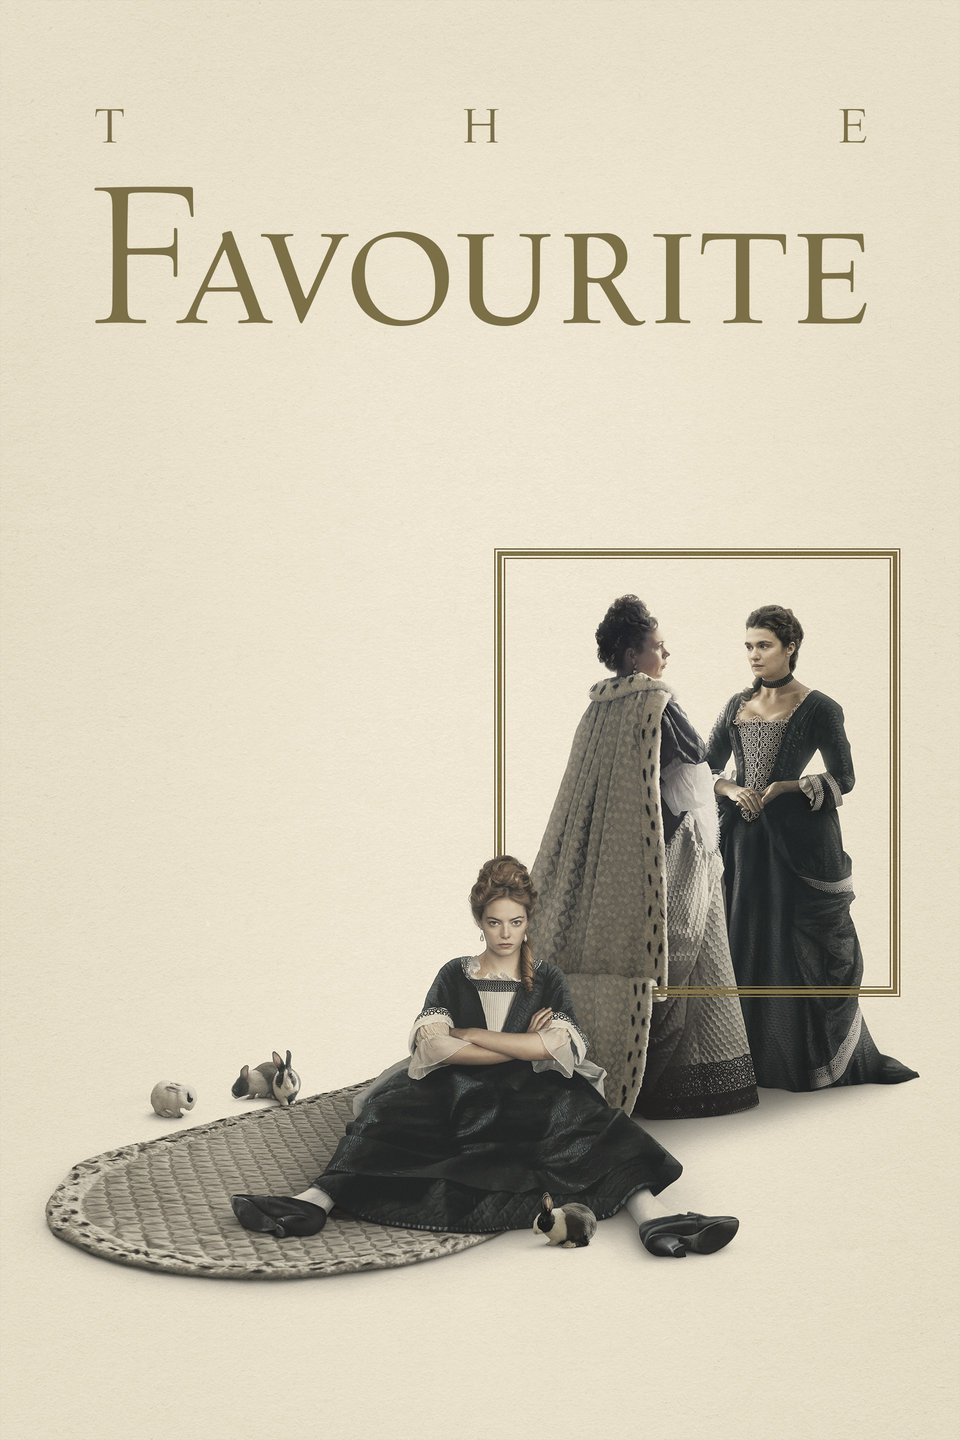 """The Favourite"": One-Sentence Review"